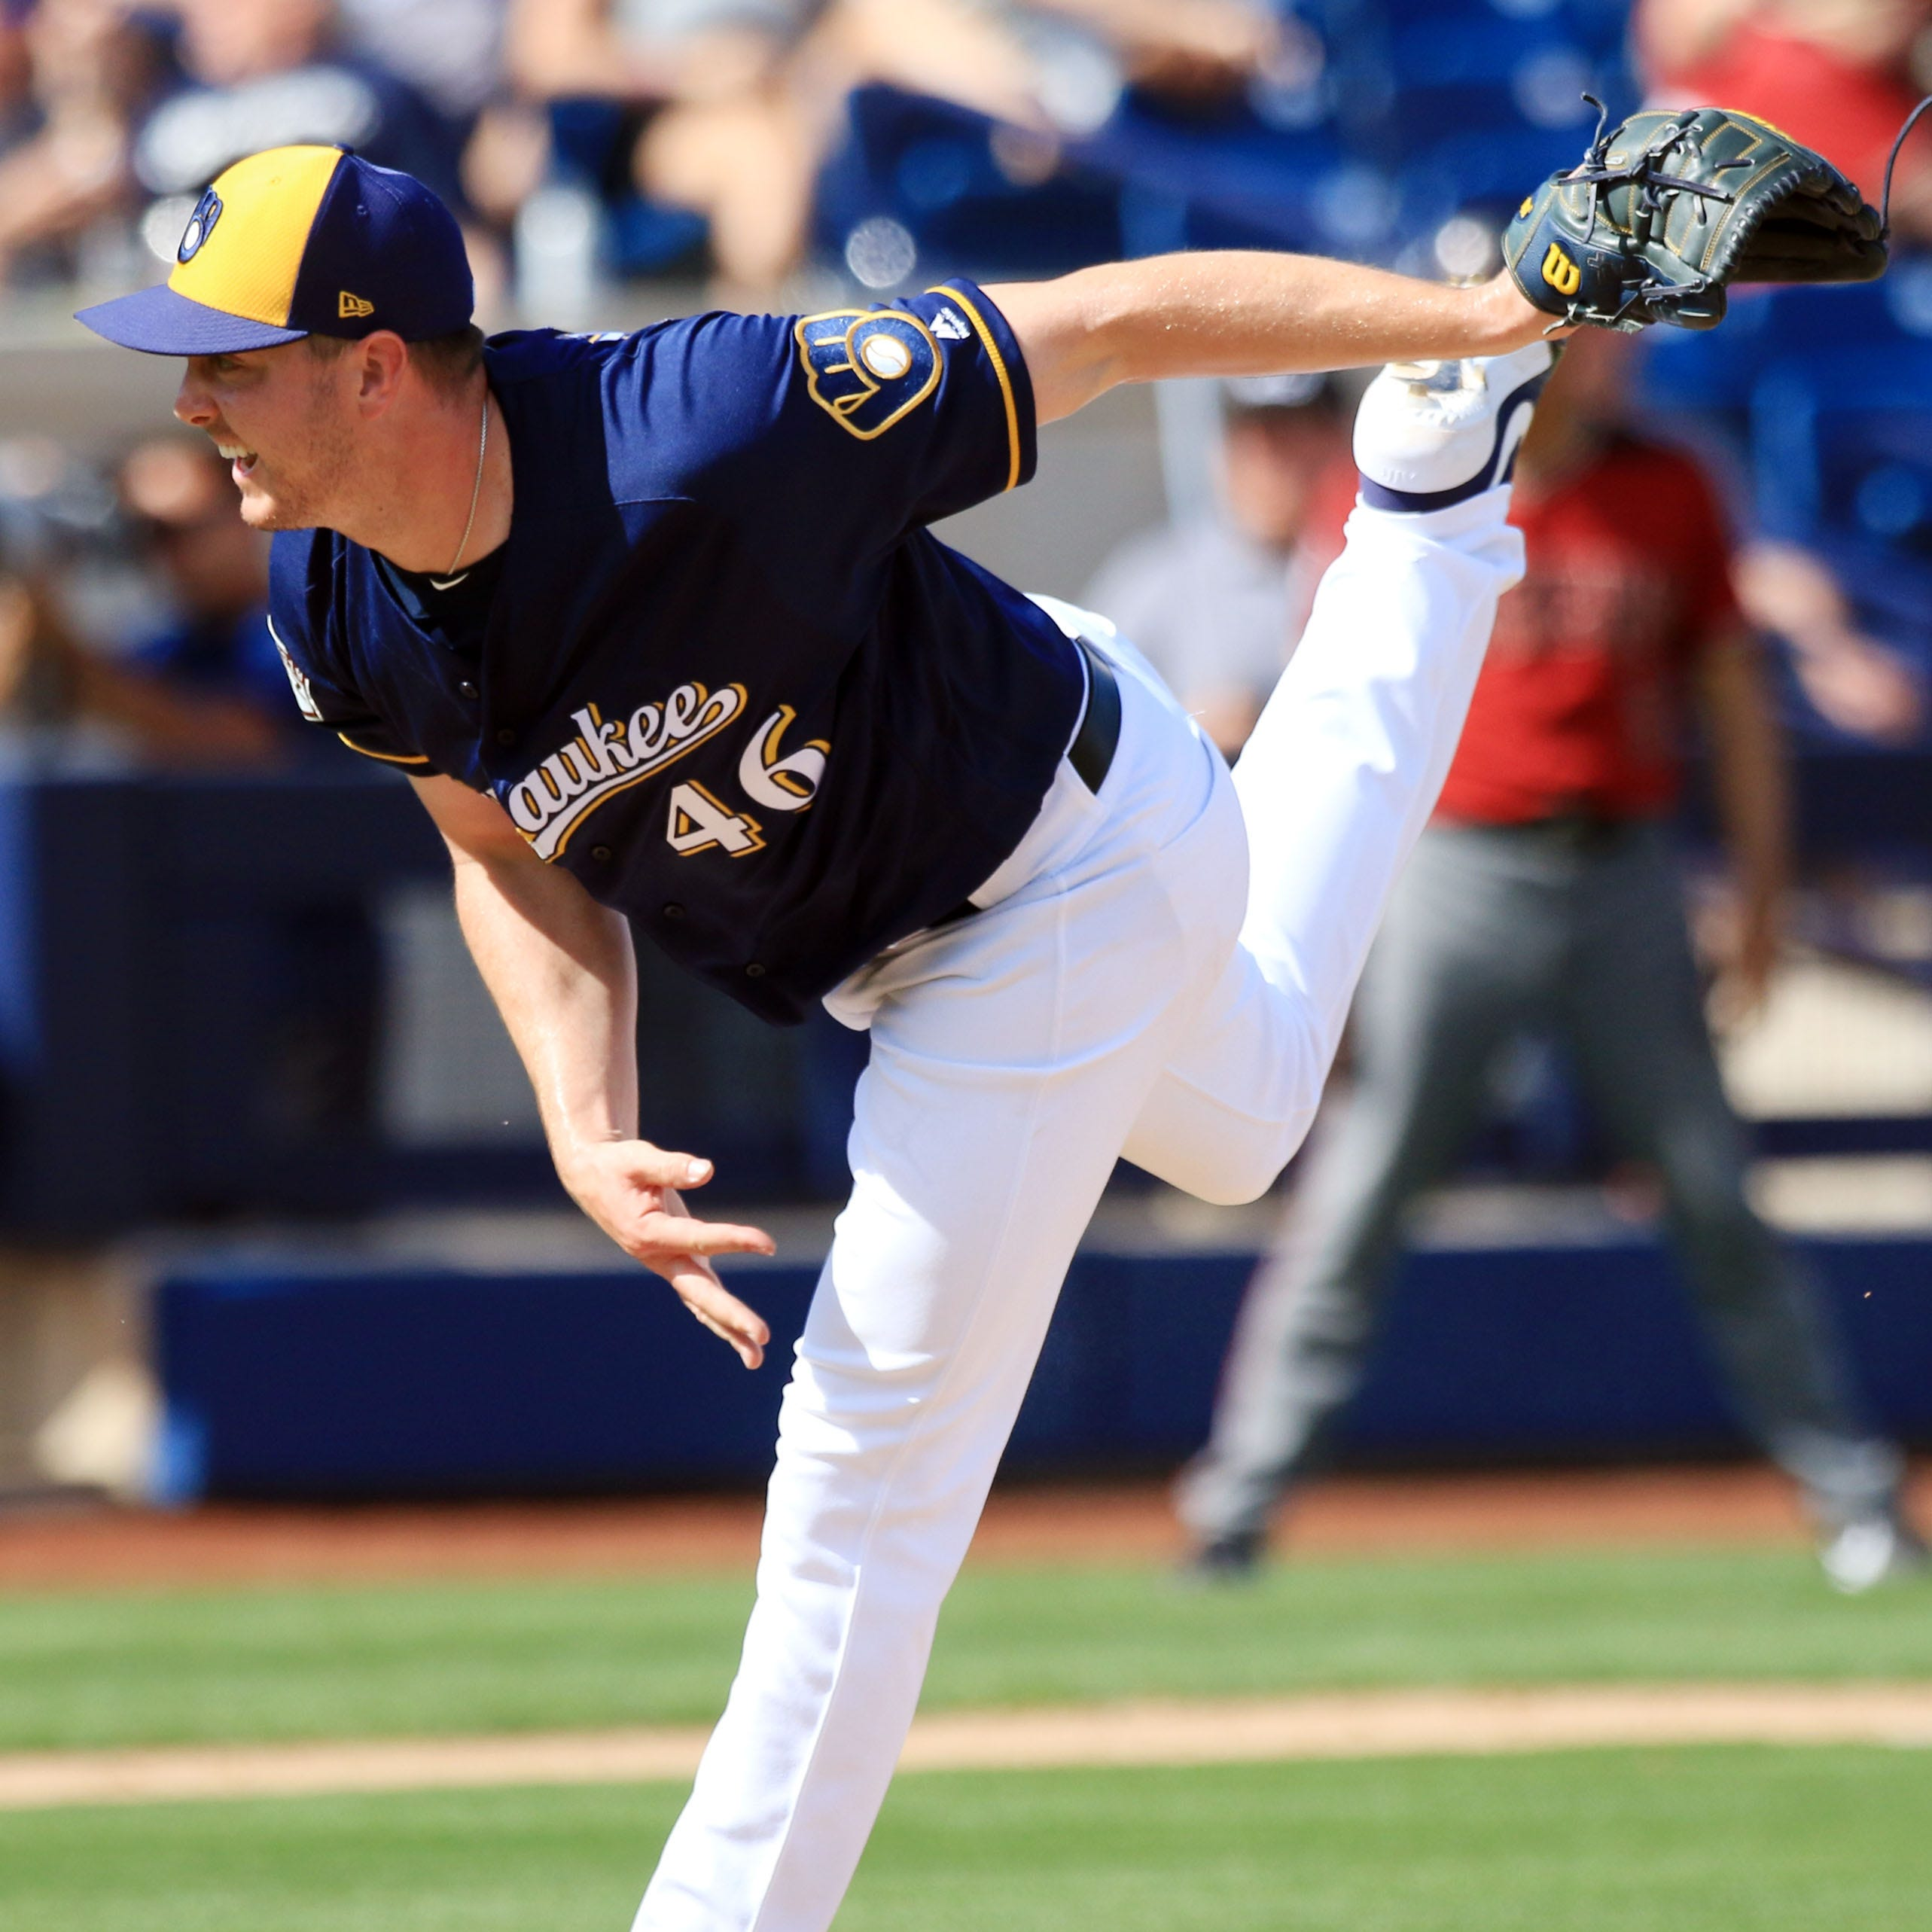 Brewers reliever Corey Knebel has 'UCL issue' in elbow, will get second opinion on severity